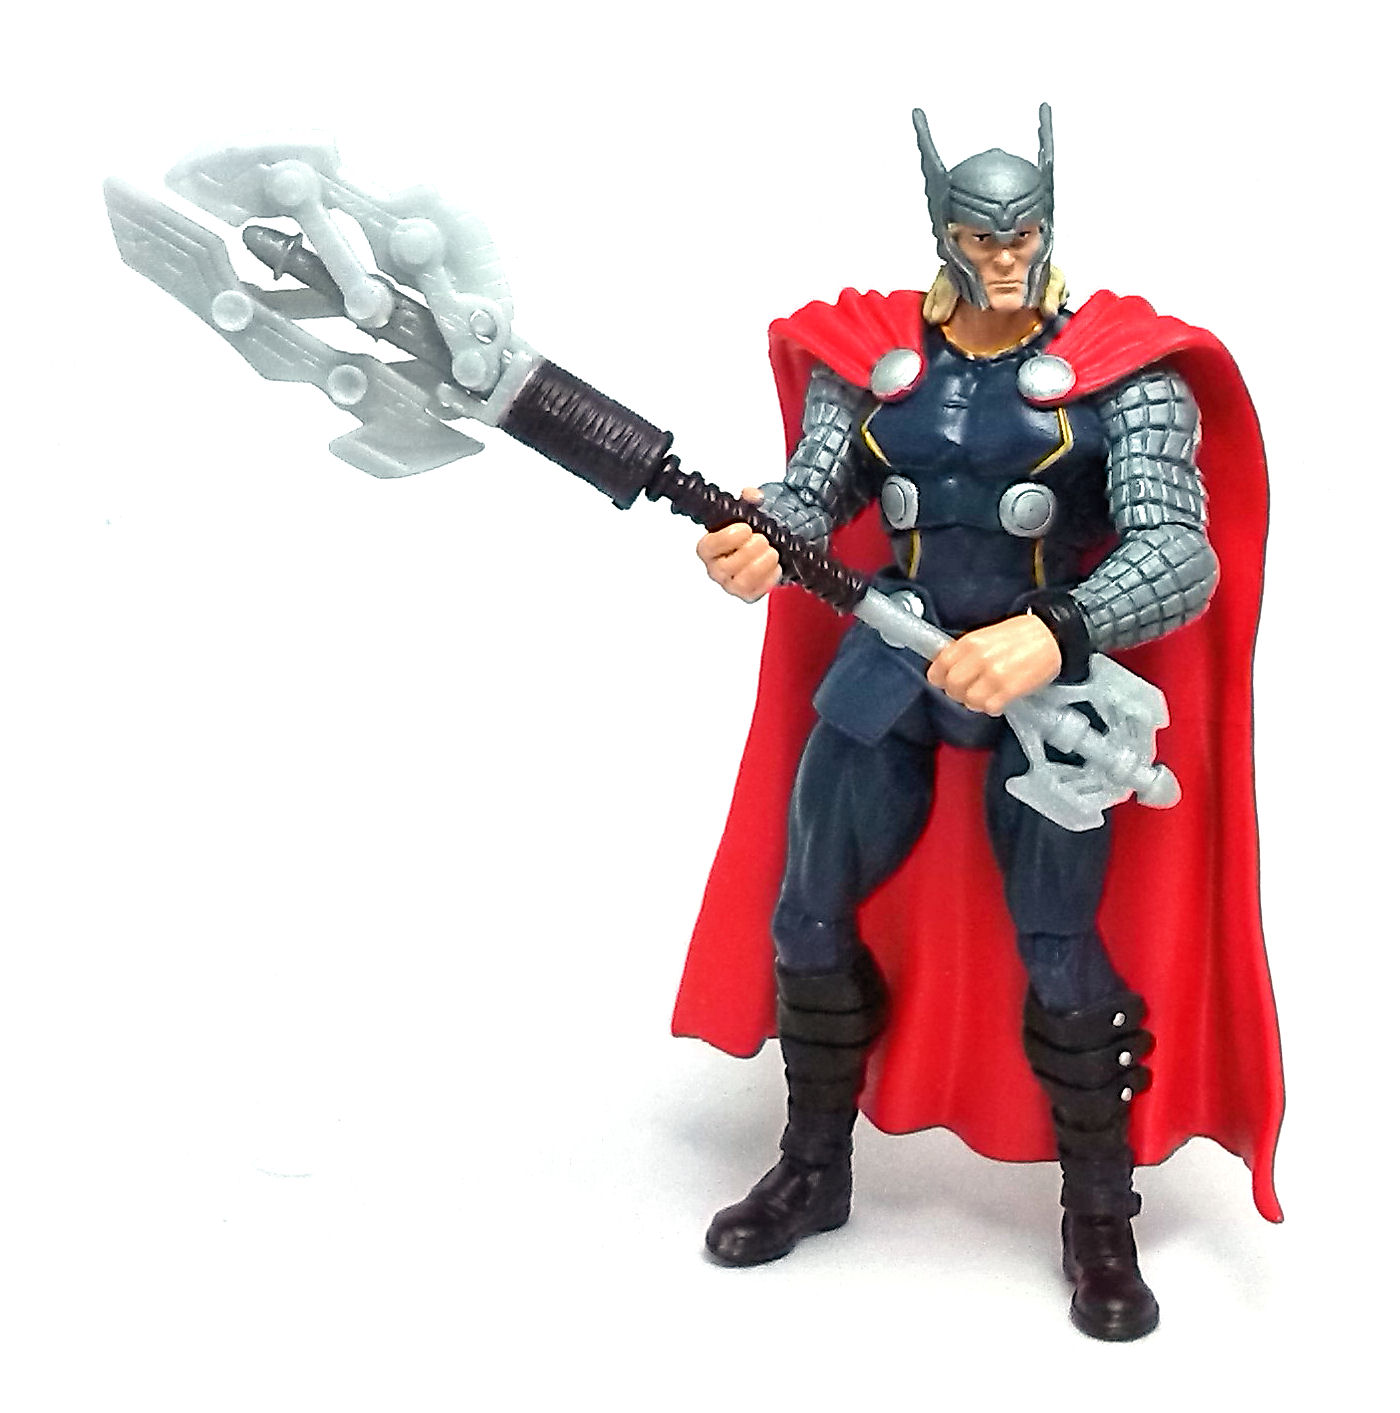 thunder axe thor avengers assemble action figure review